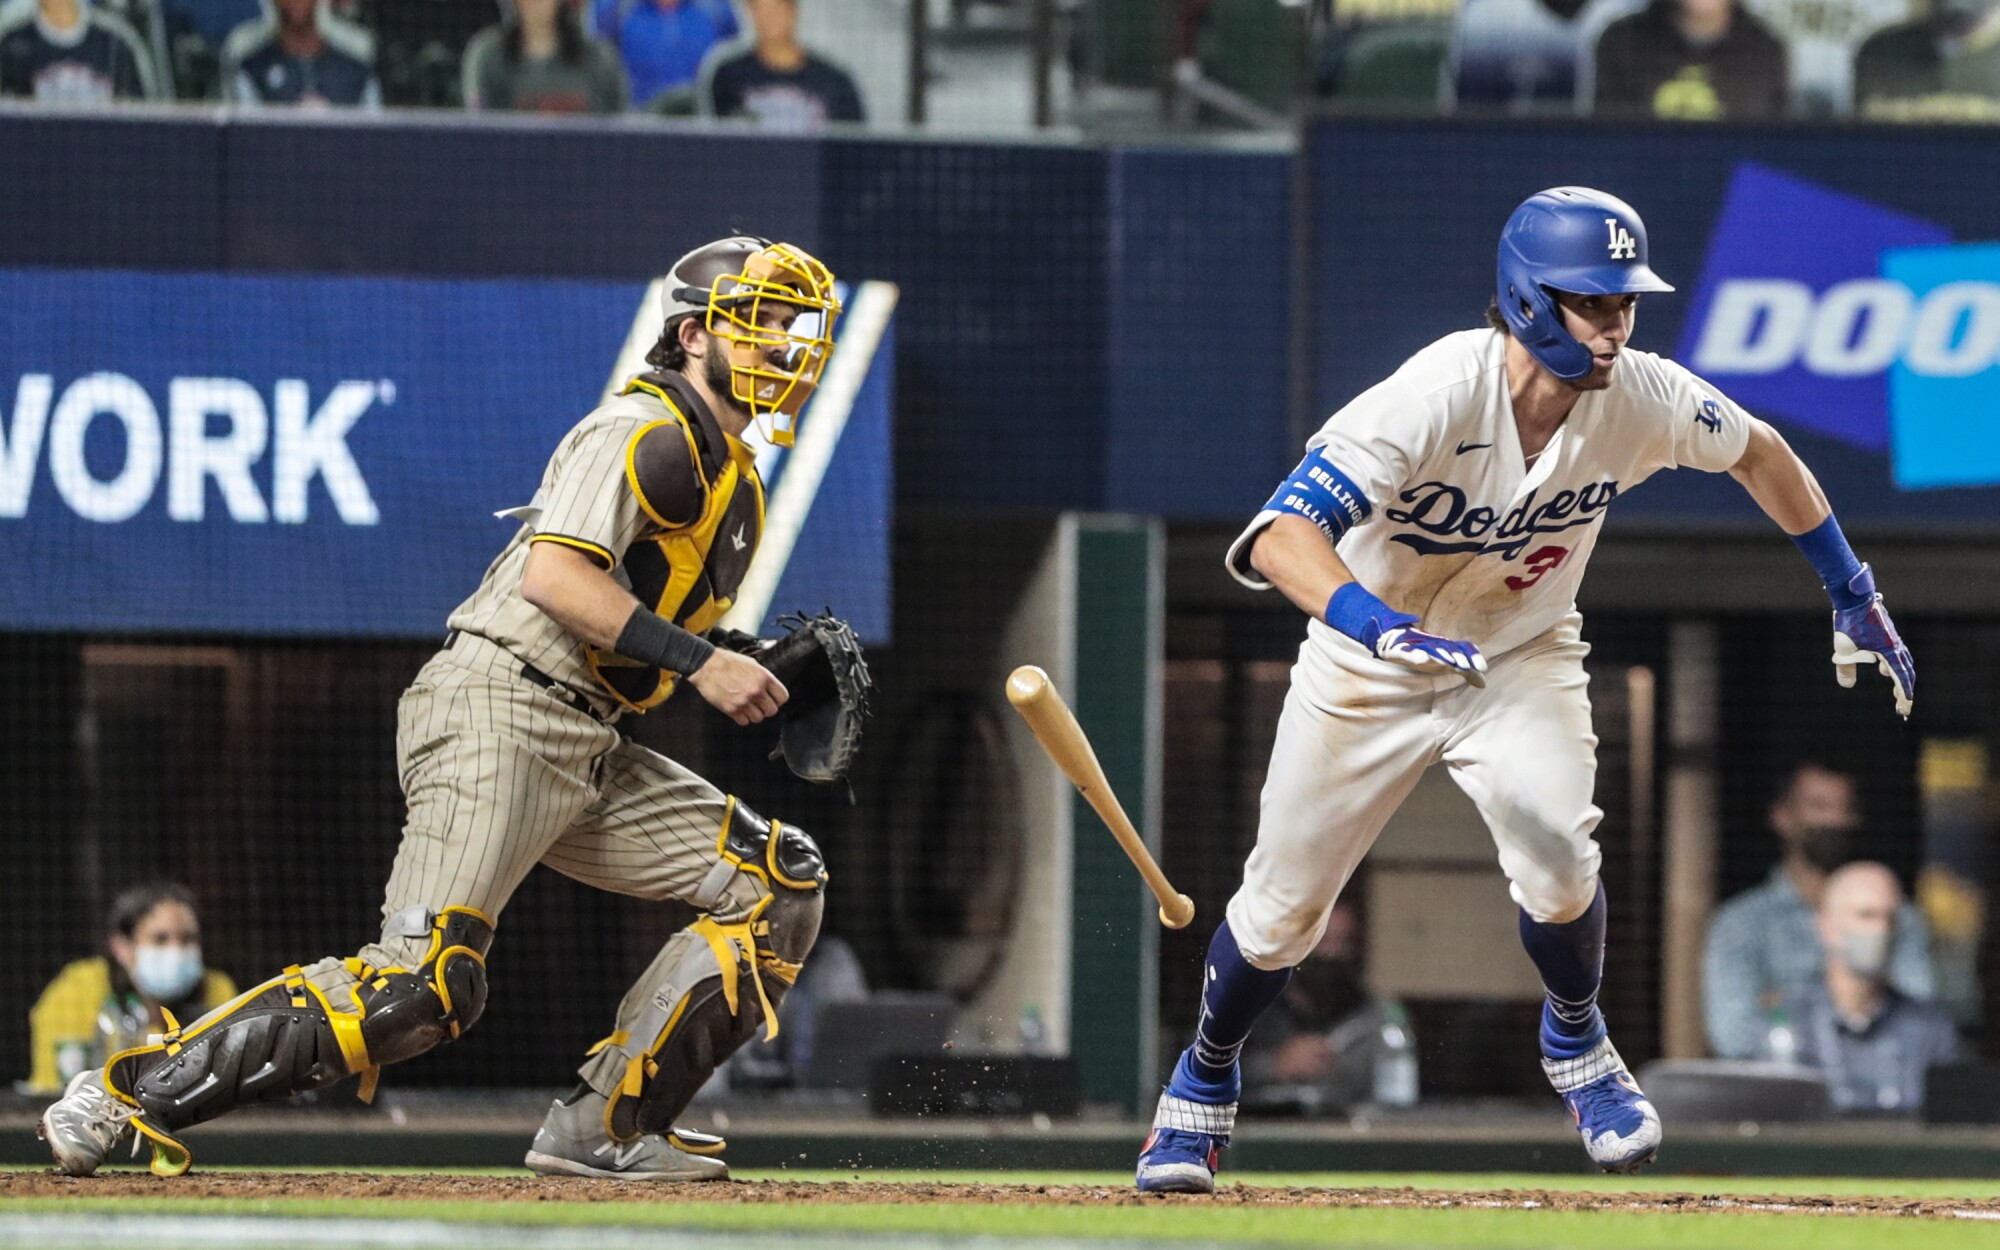 Dodgers center fielder Cody Bellinger reaches base on an error in the fifth inning.